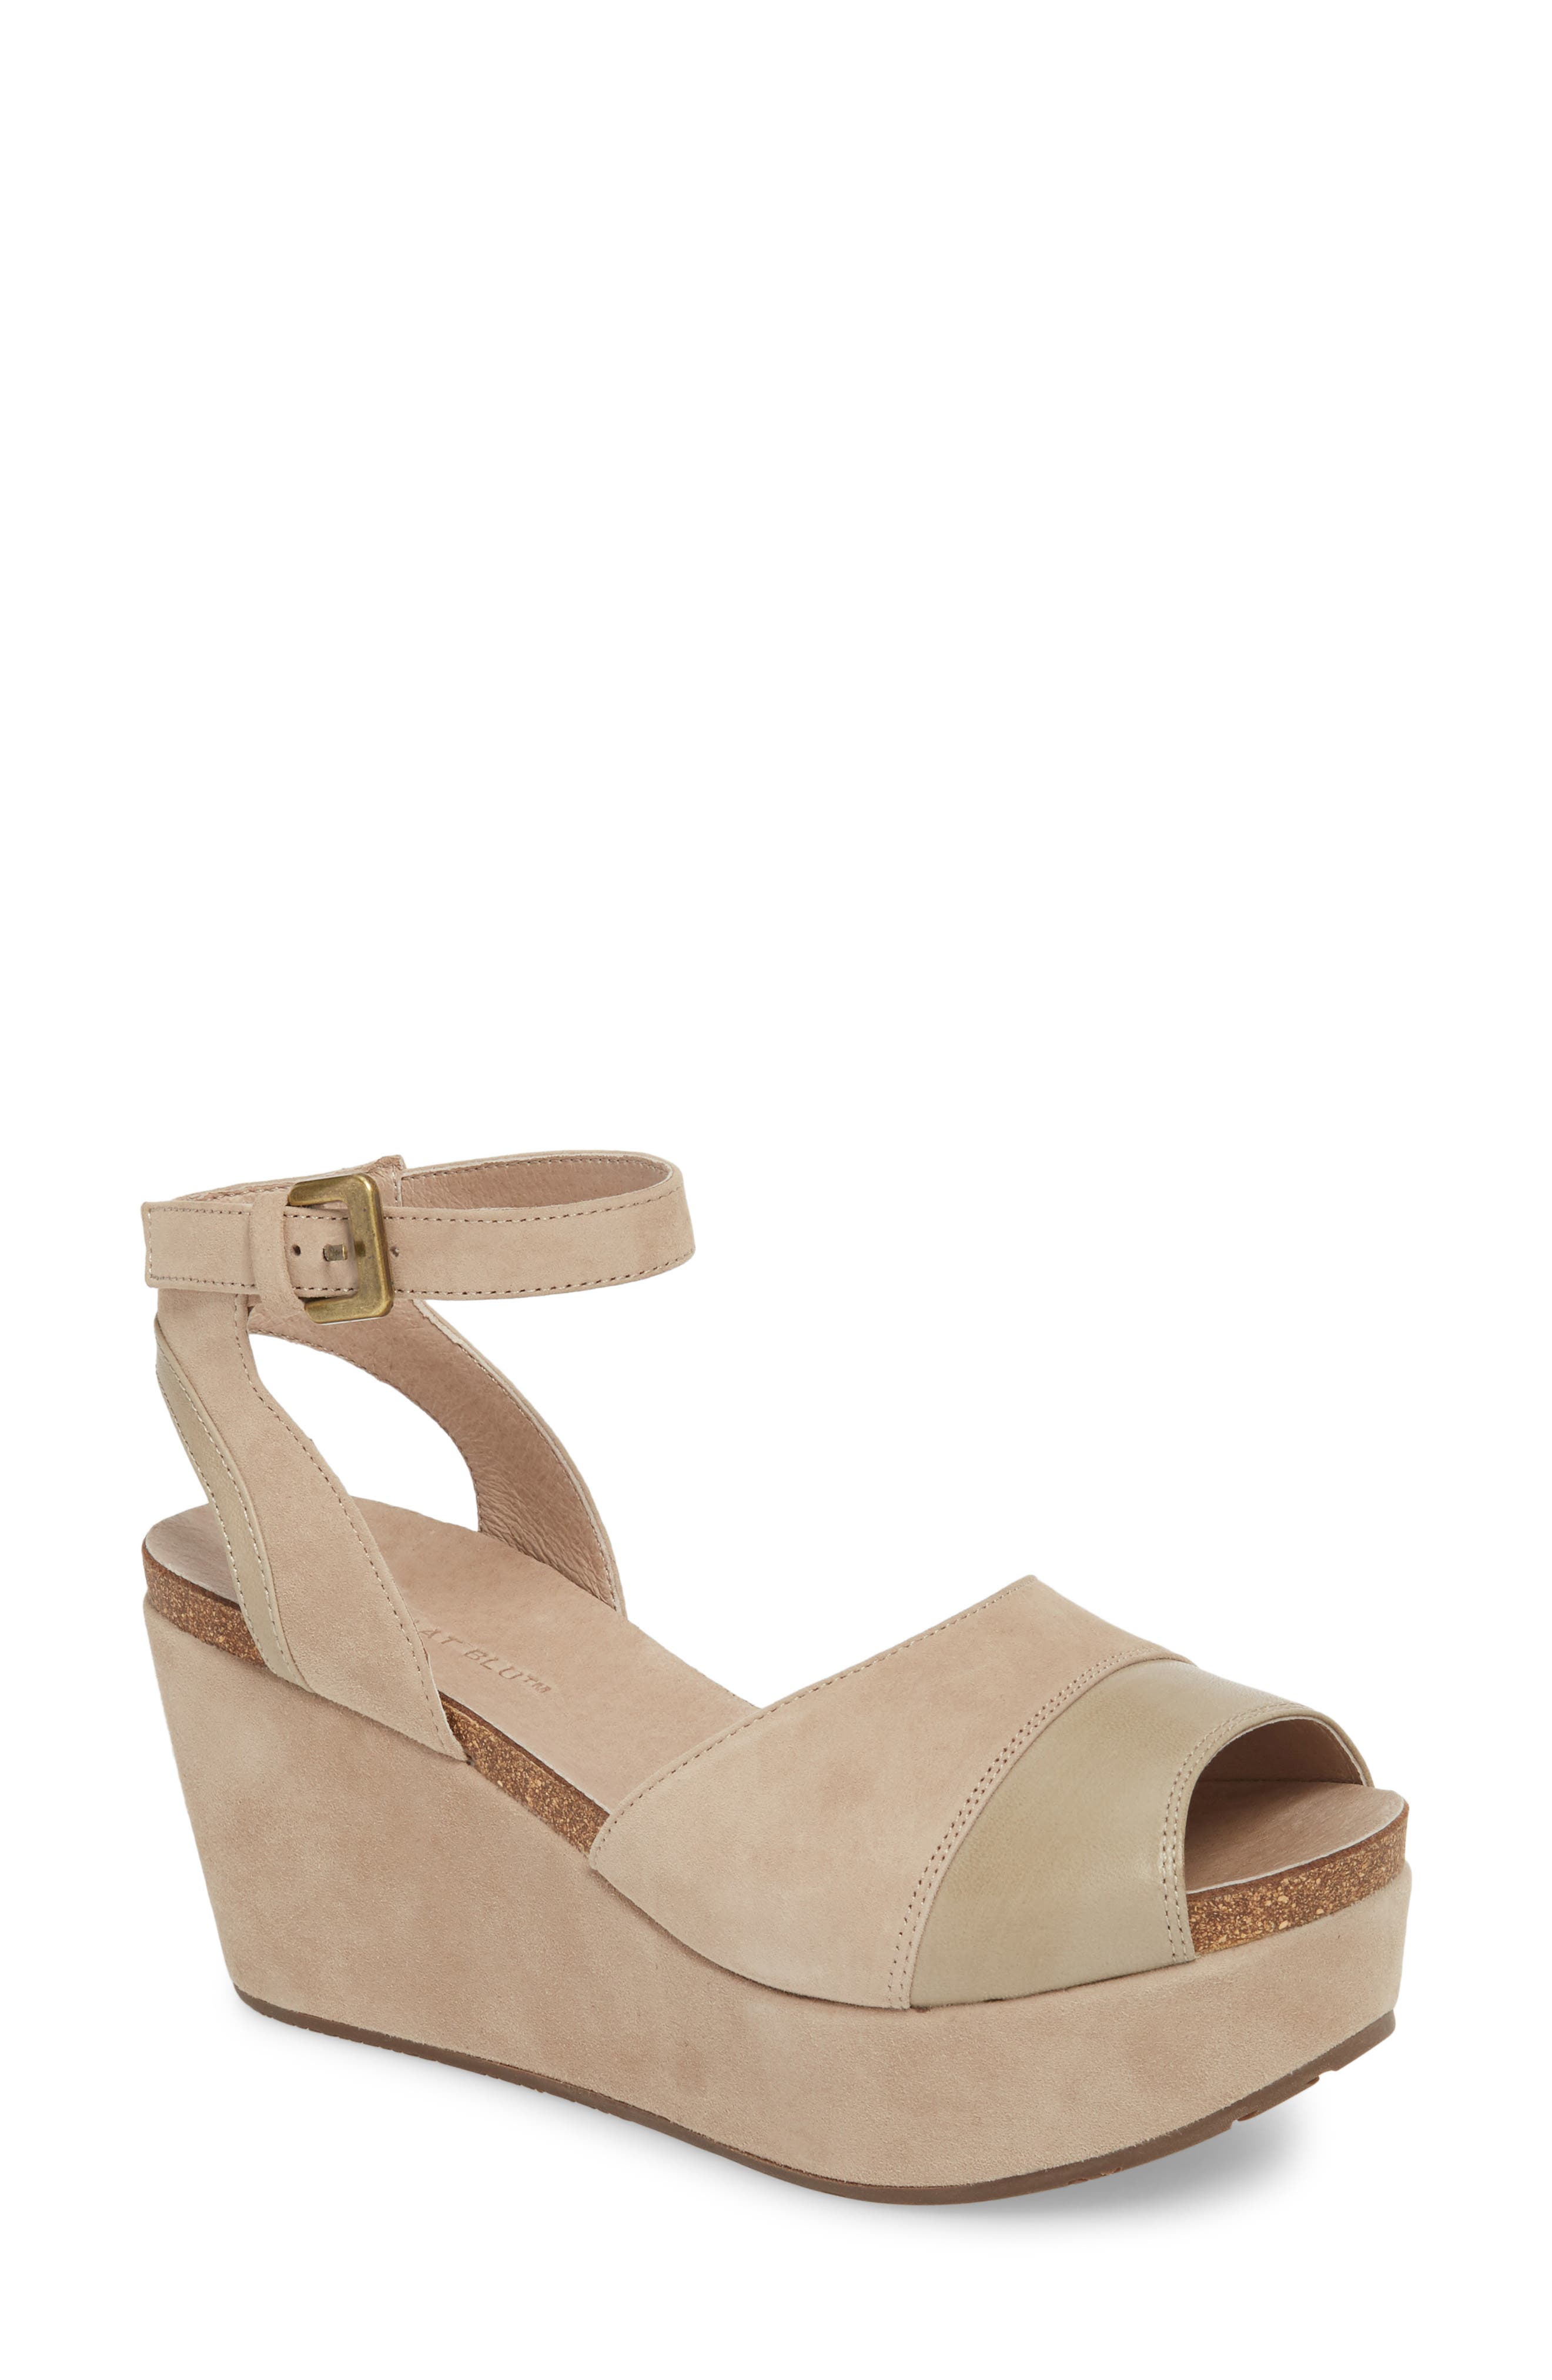 Chocolate Blu Welby Ankle Strap Wedge Sandal (Women)